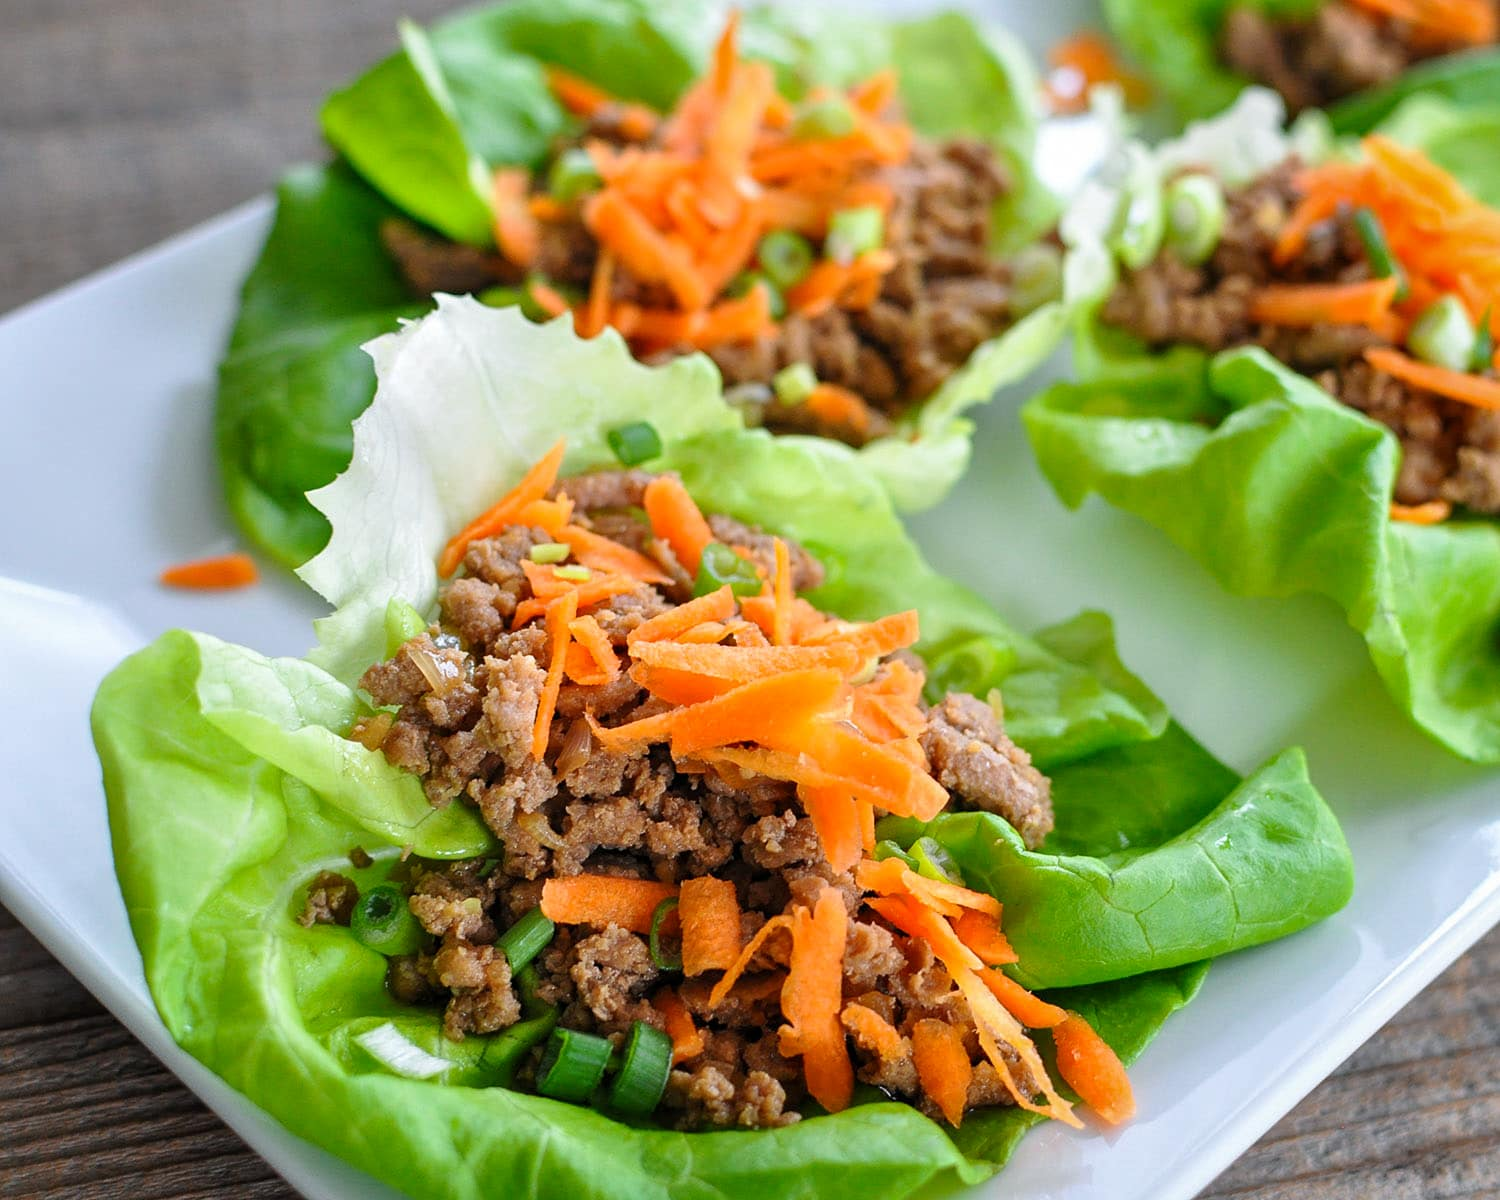 ground turkey with spices sitting in a lettuce bed with carrots